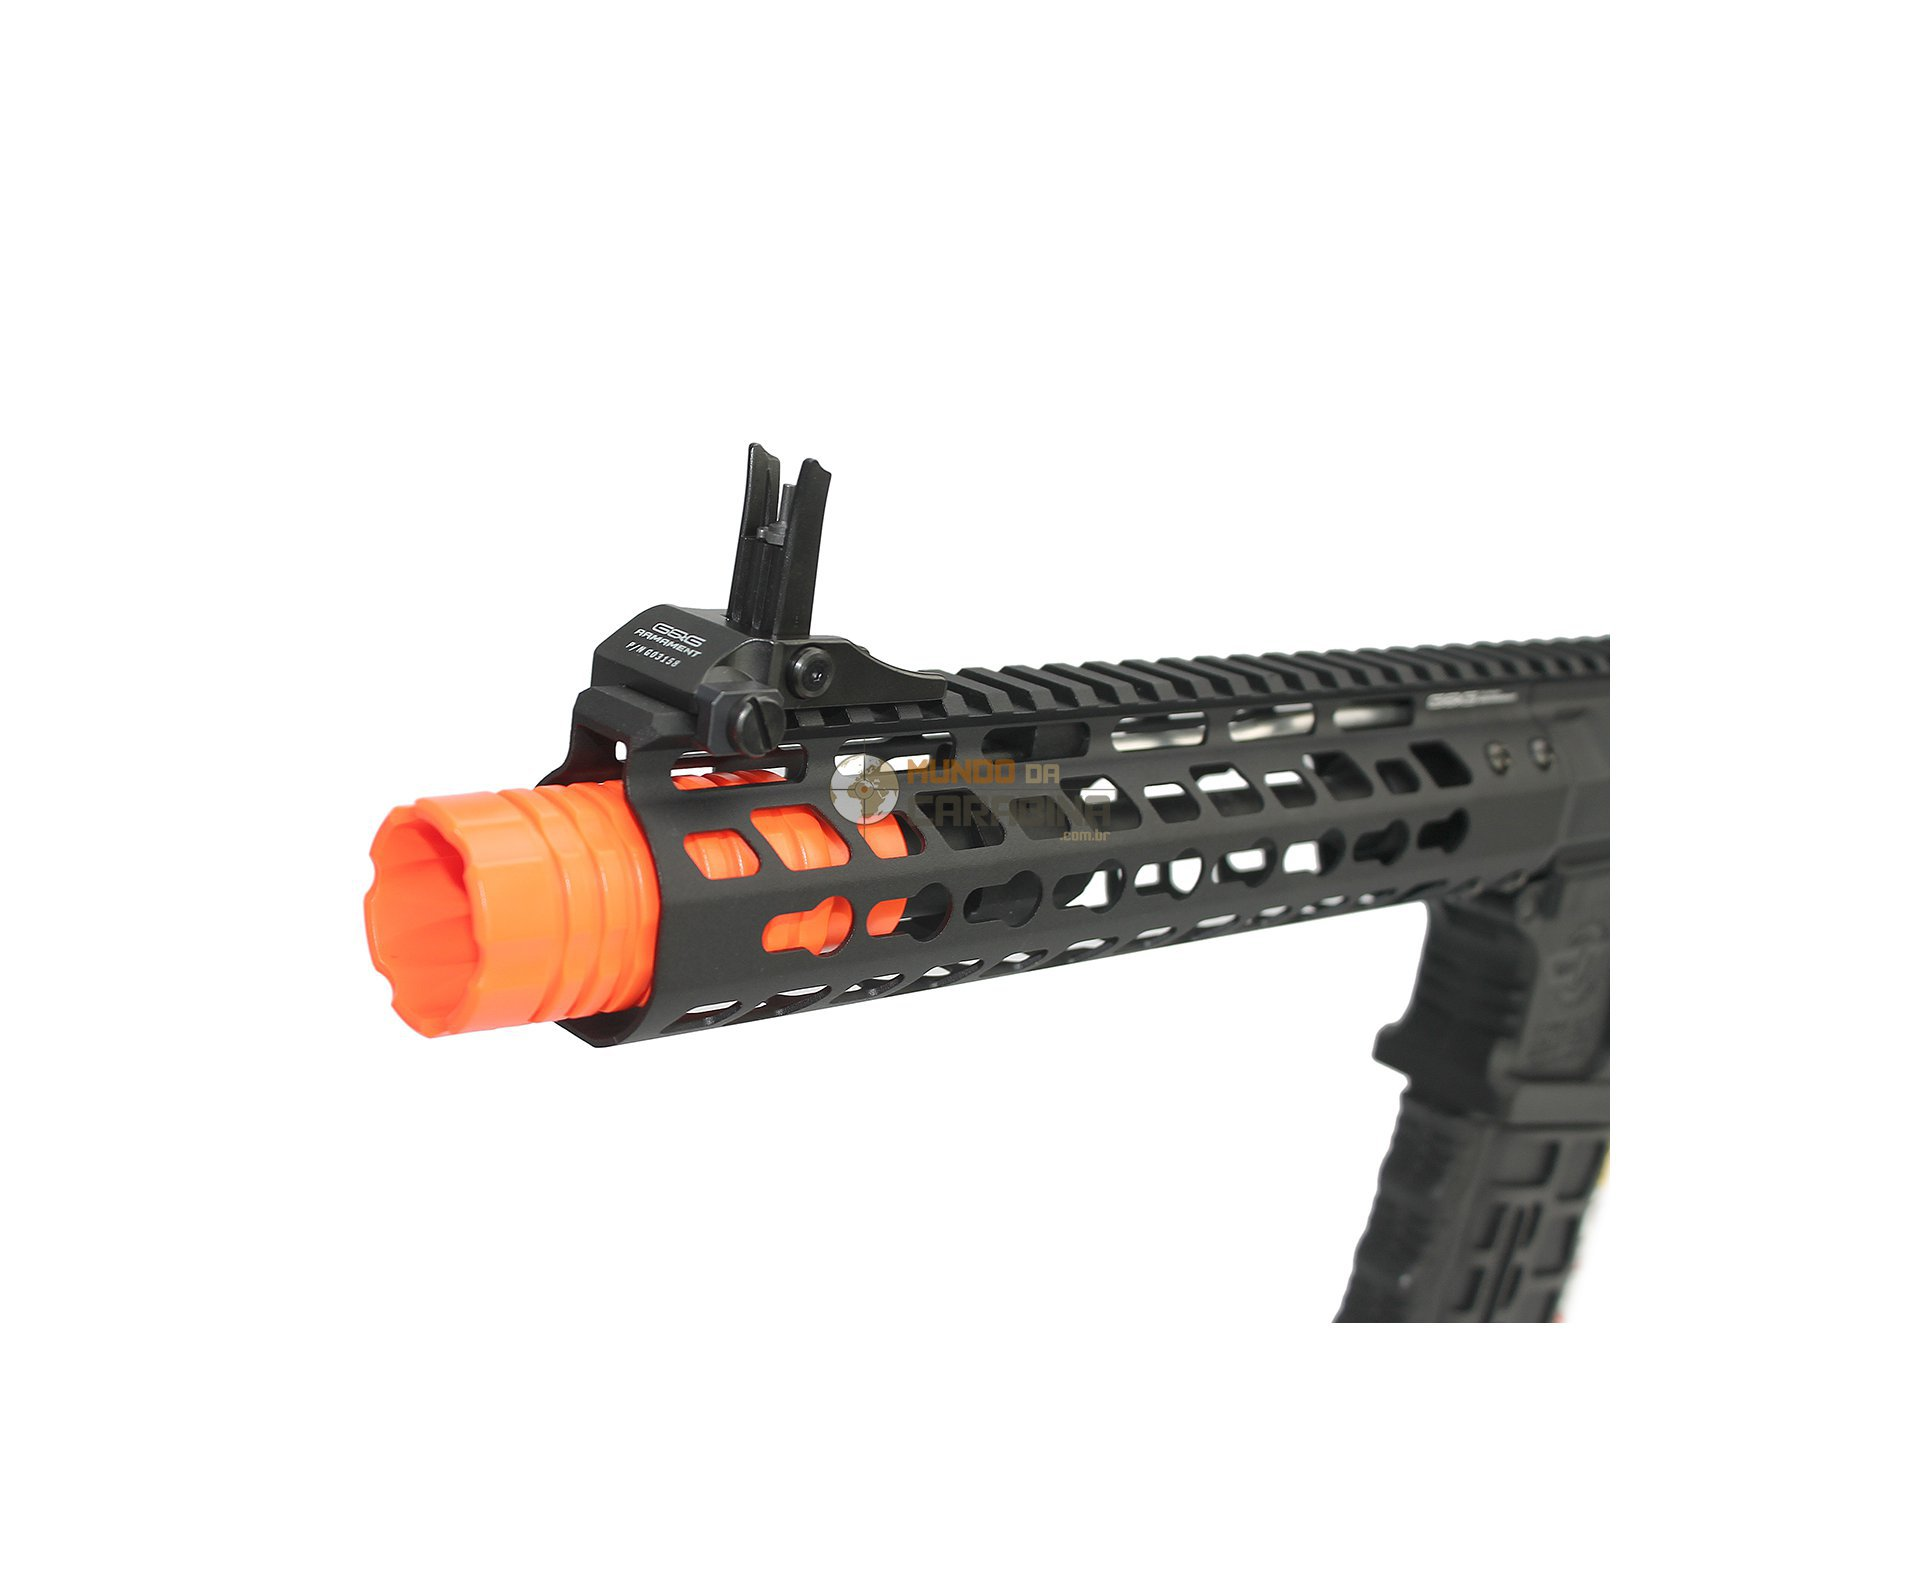 "Rifle De Airsoft Cm16 Wild Hog 9"" Elet Mosfet- Cal 6mm - G&g"